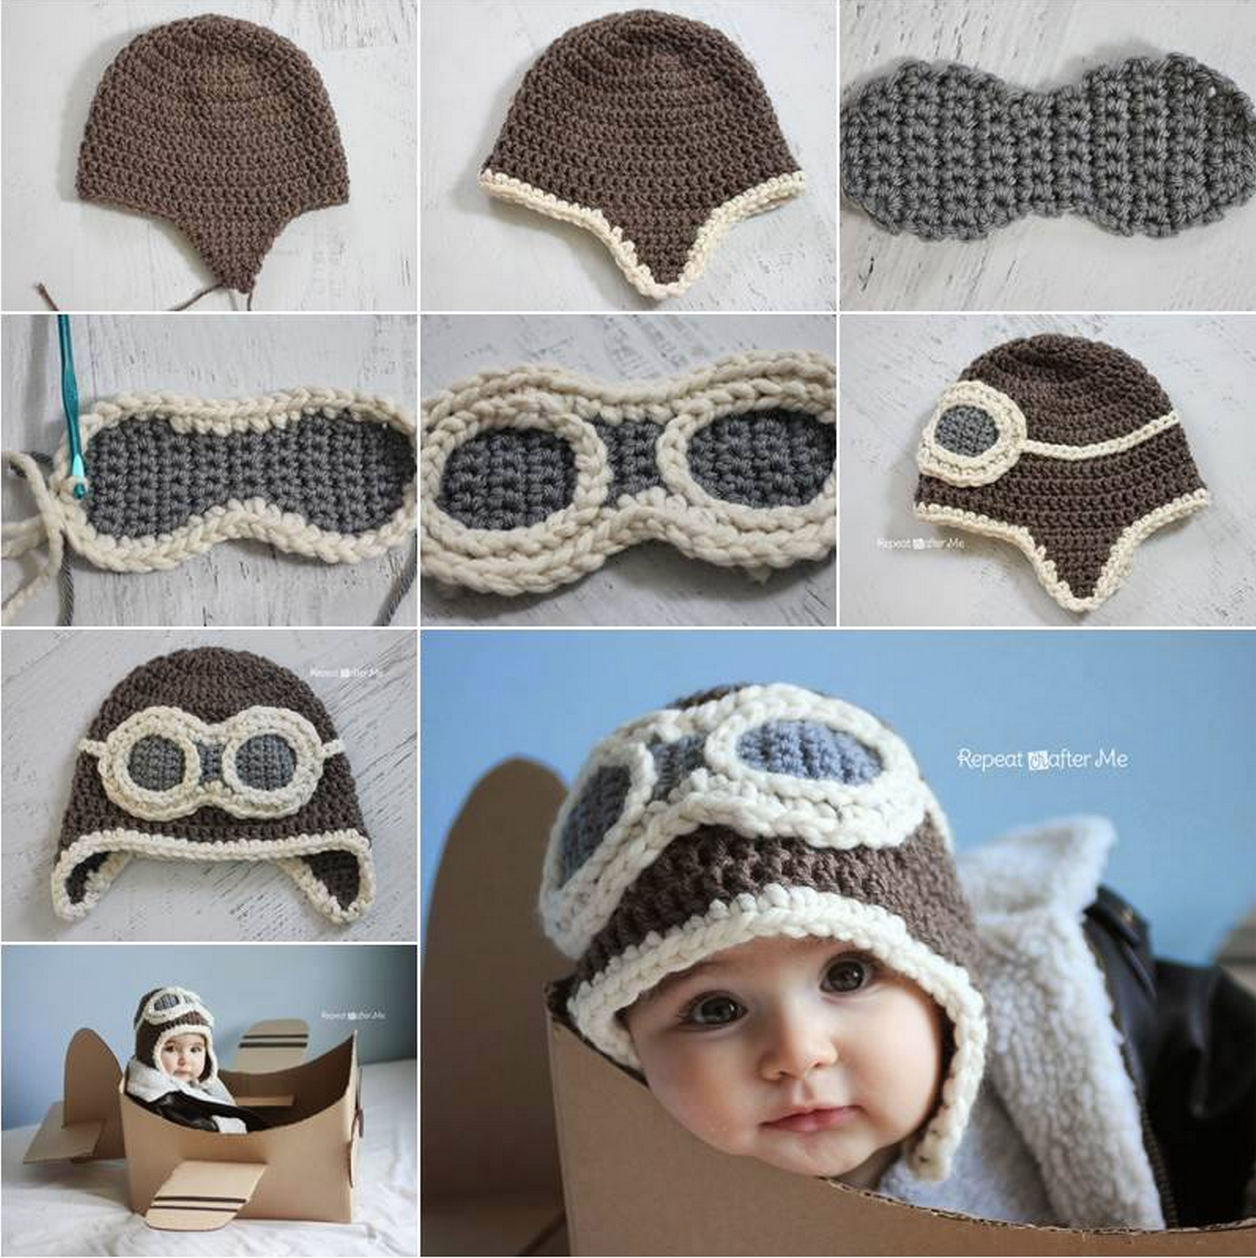 Baby Aviator Hat Knitting Pattern Free : Crochet Aviator Hat Youtube Video Lots Of Free Pattern Aviator hat, Free pa...